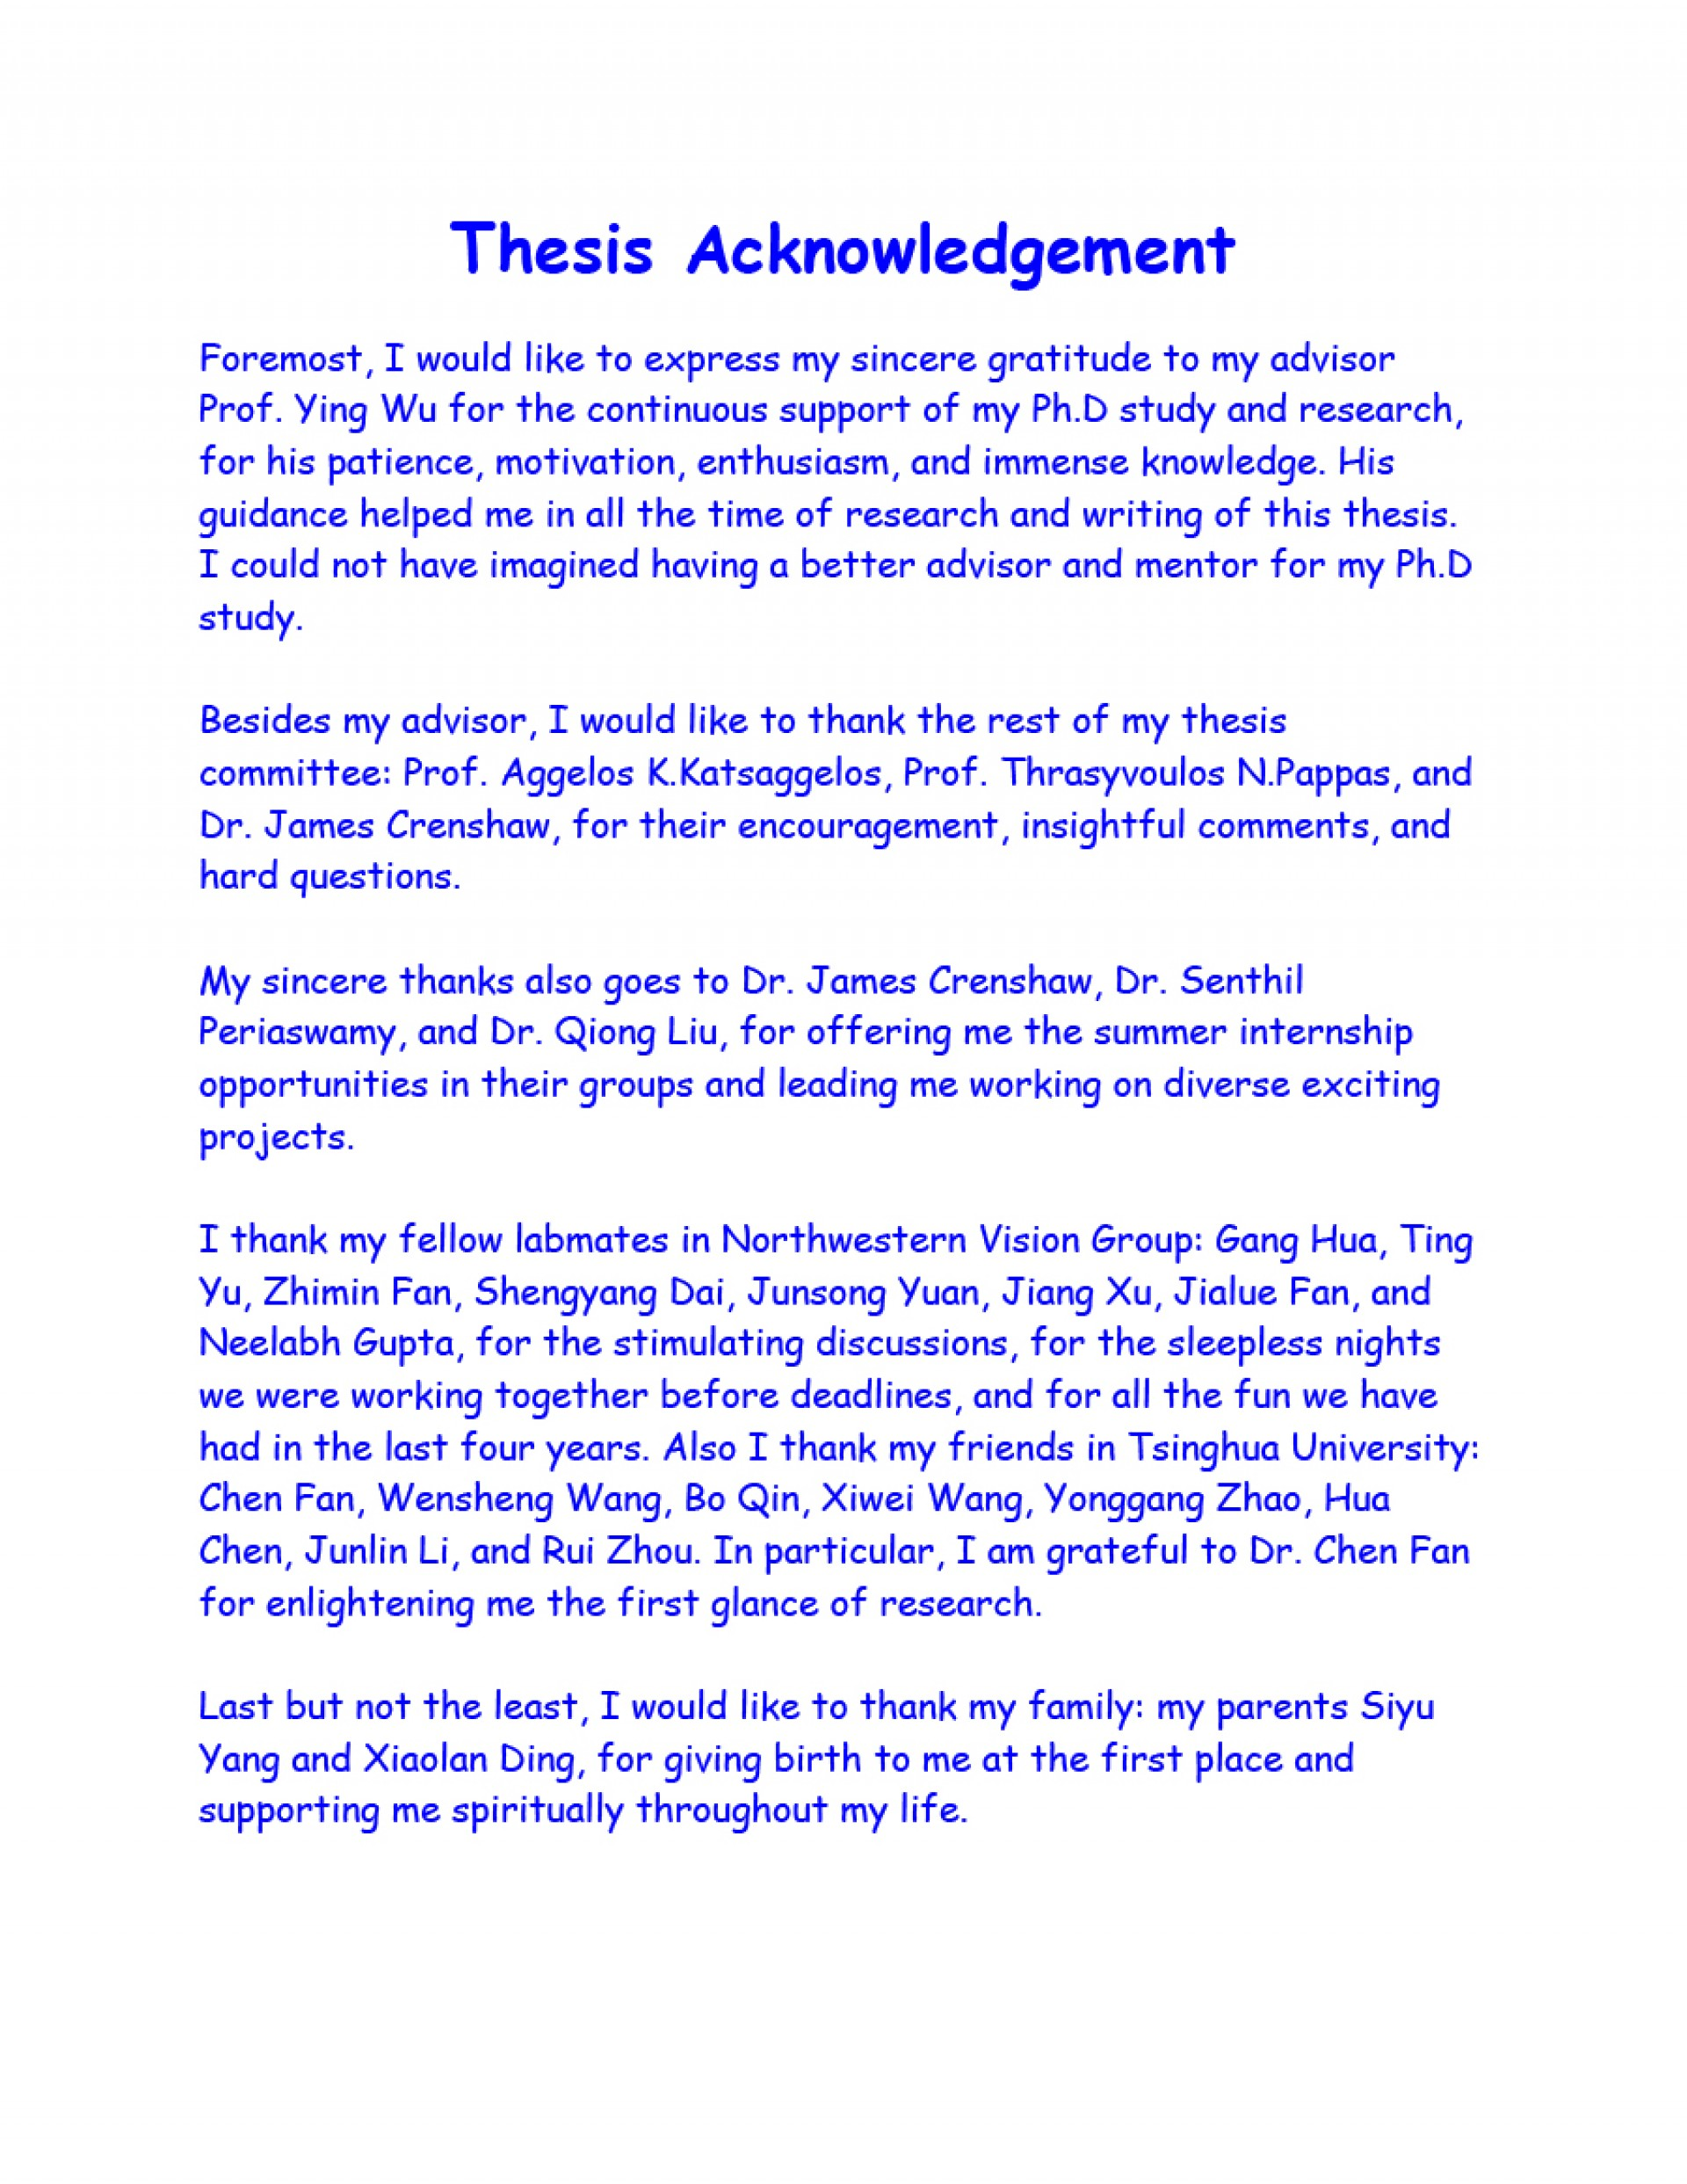 004 Acknowledgement For Research Paper Pdf Sample Marvelous Example 1920